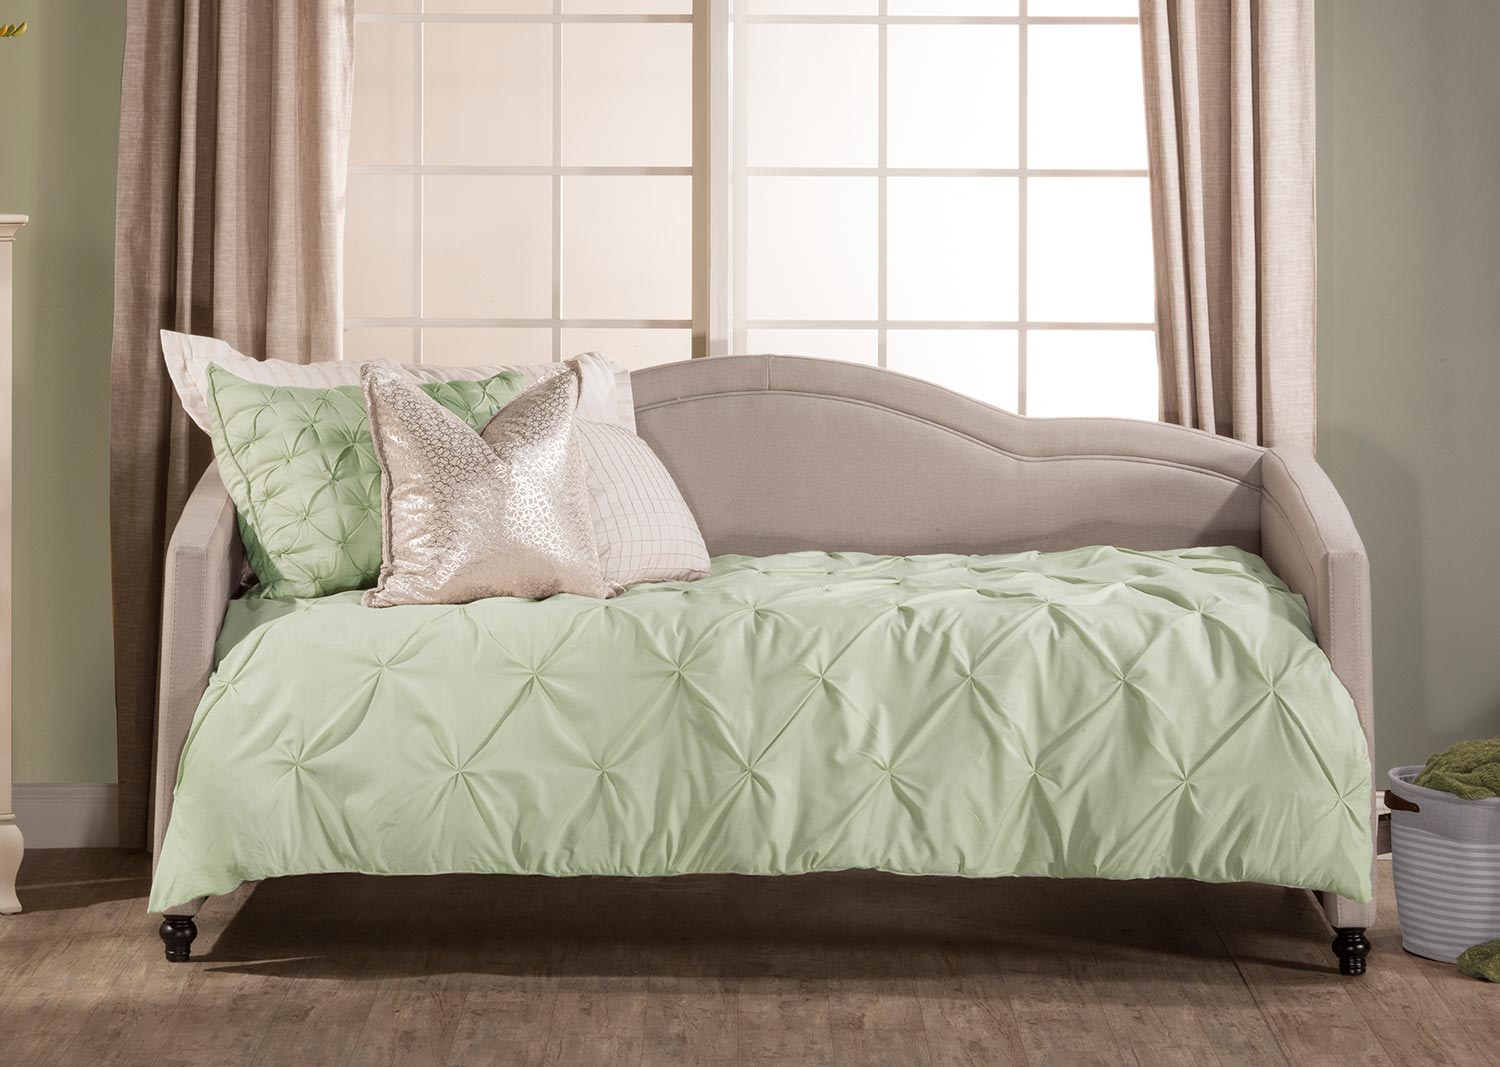 Hillsdale Jasmine Daybed - Dove Gray Fabric